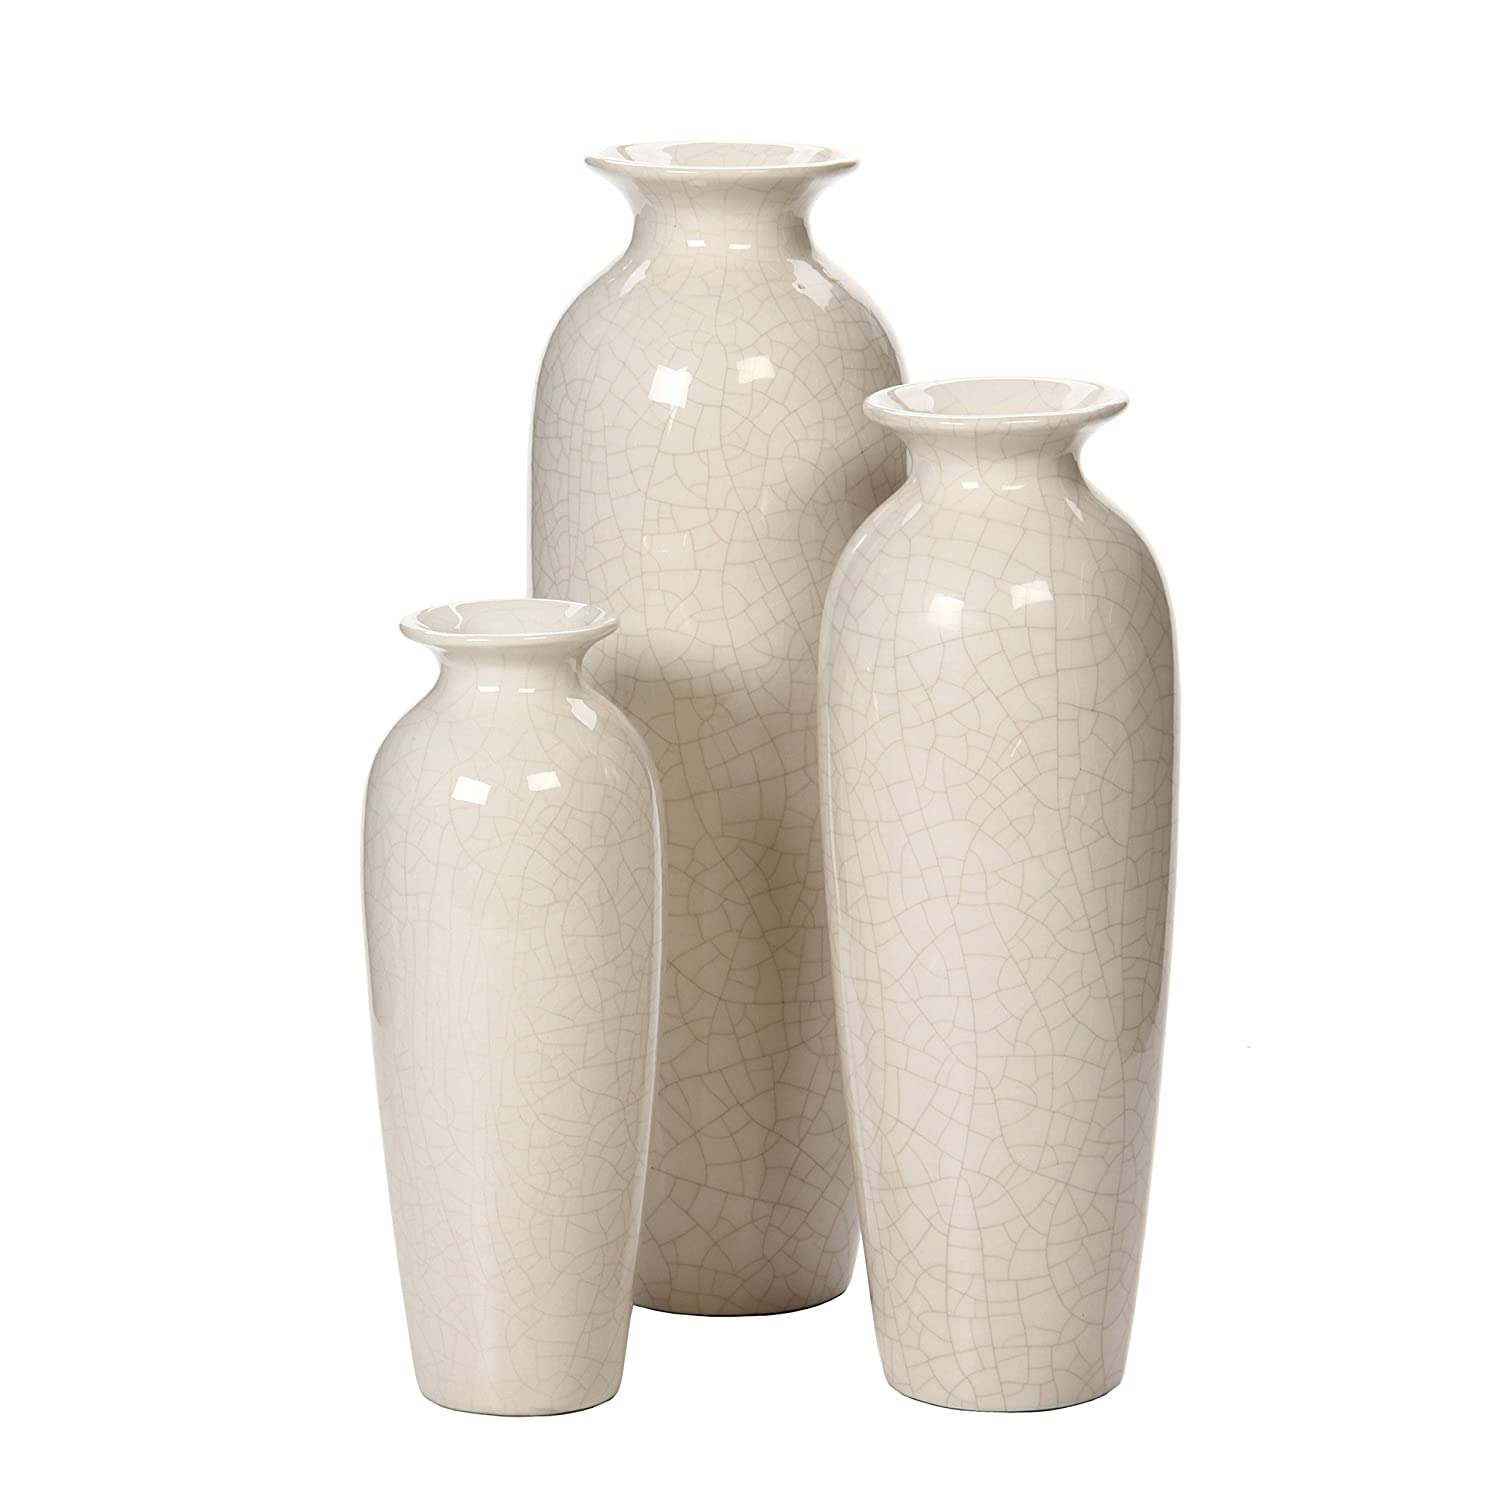 Vases amazon home decor hosleys set of 3 crackle ivory ceramic vases in gift box ideal gift for wedding reviewsmspy